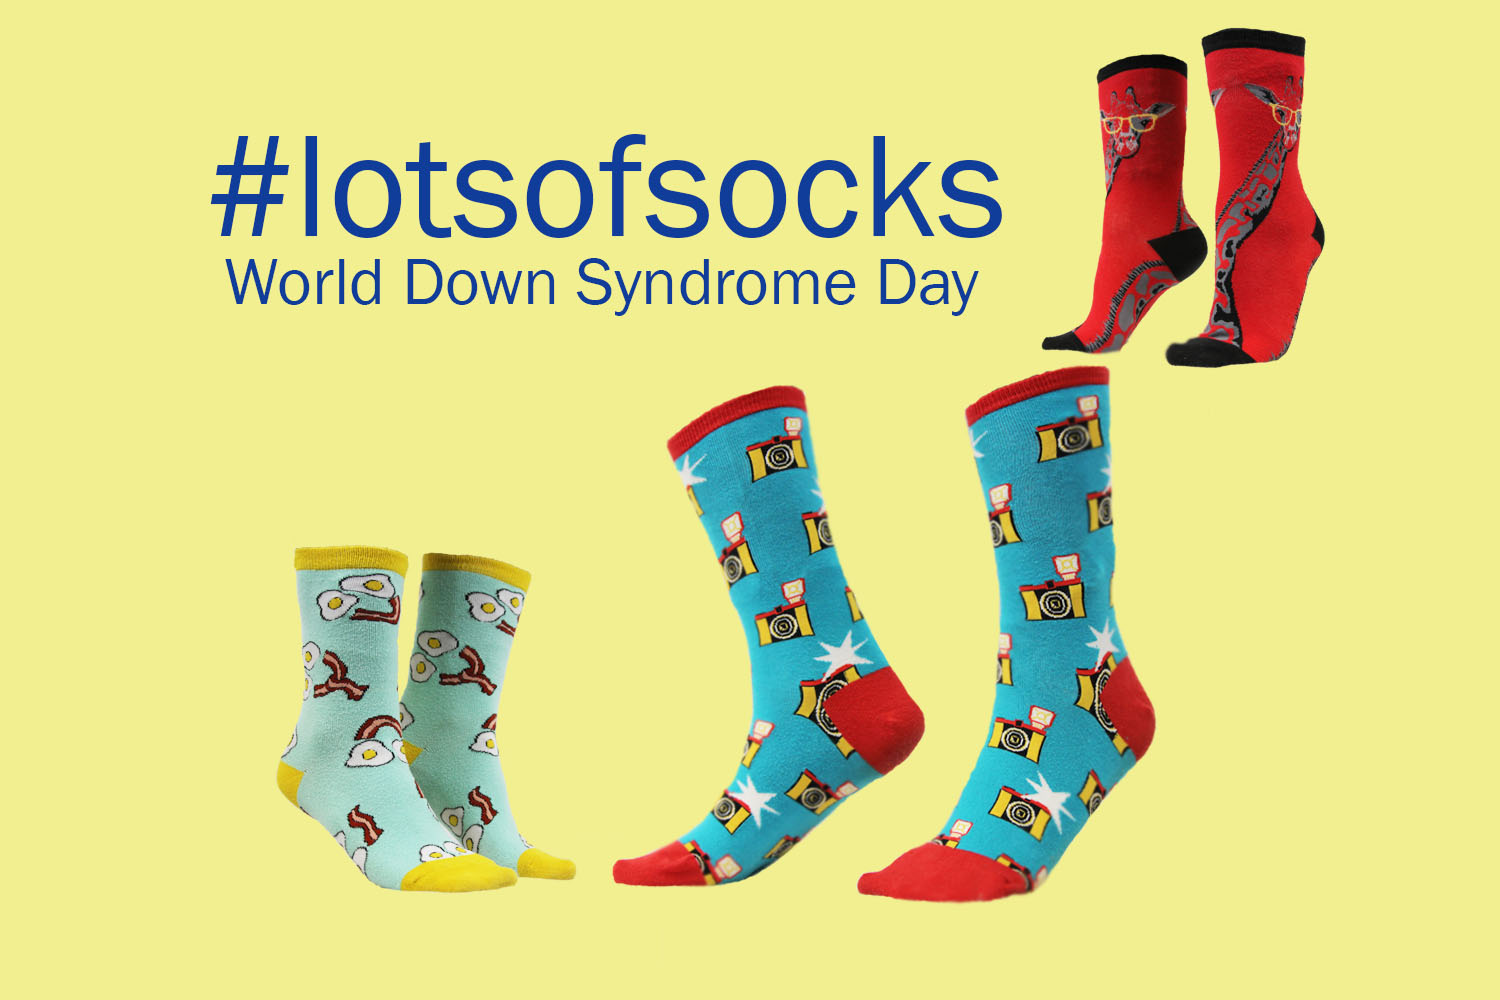 Students can use #lotsofsocks to upload photos of themselves wearing fun socks for World Down Syndrome Awareness Day